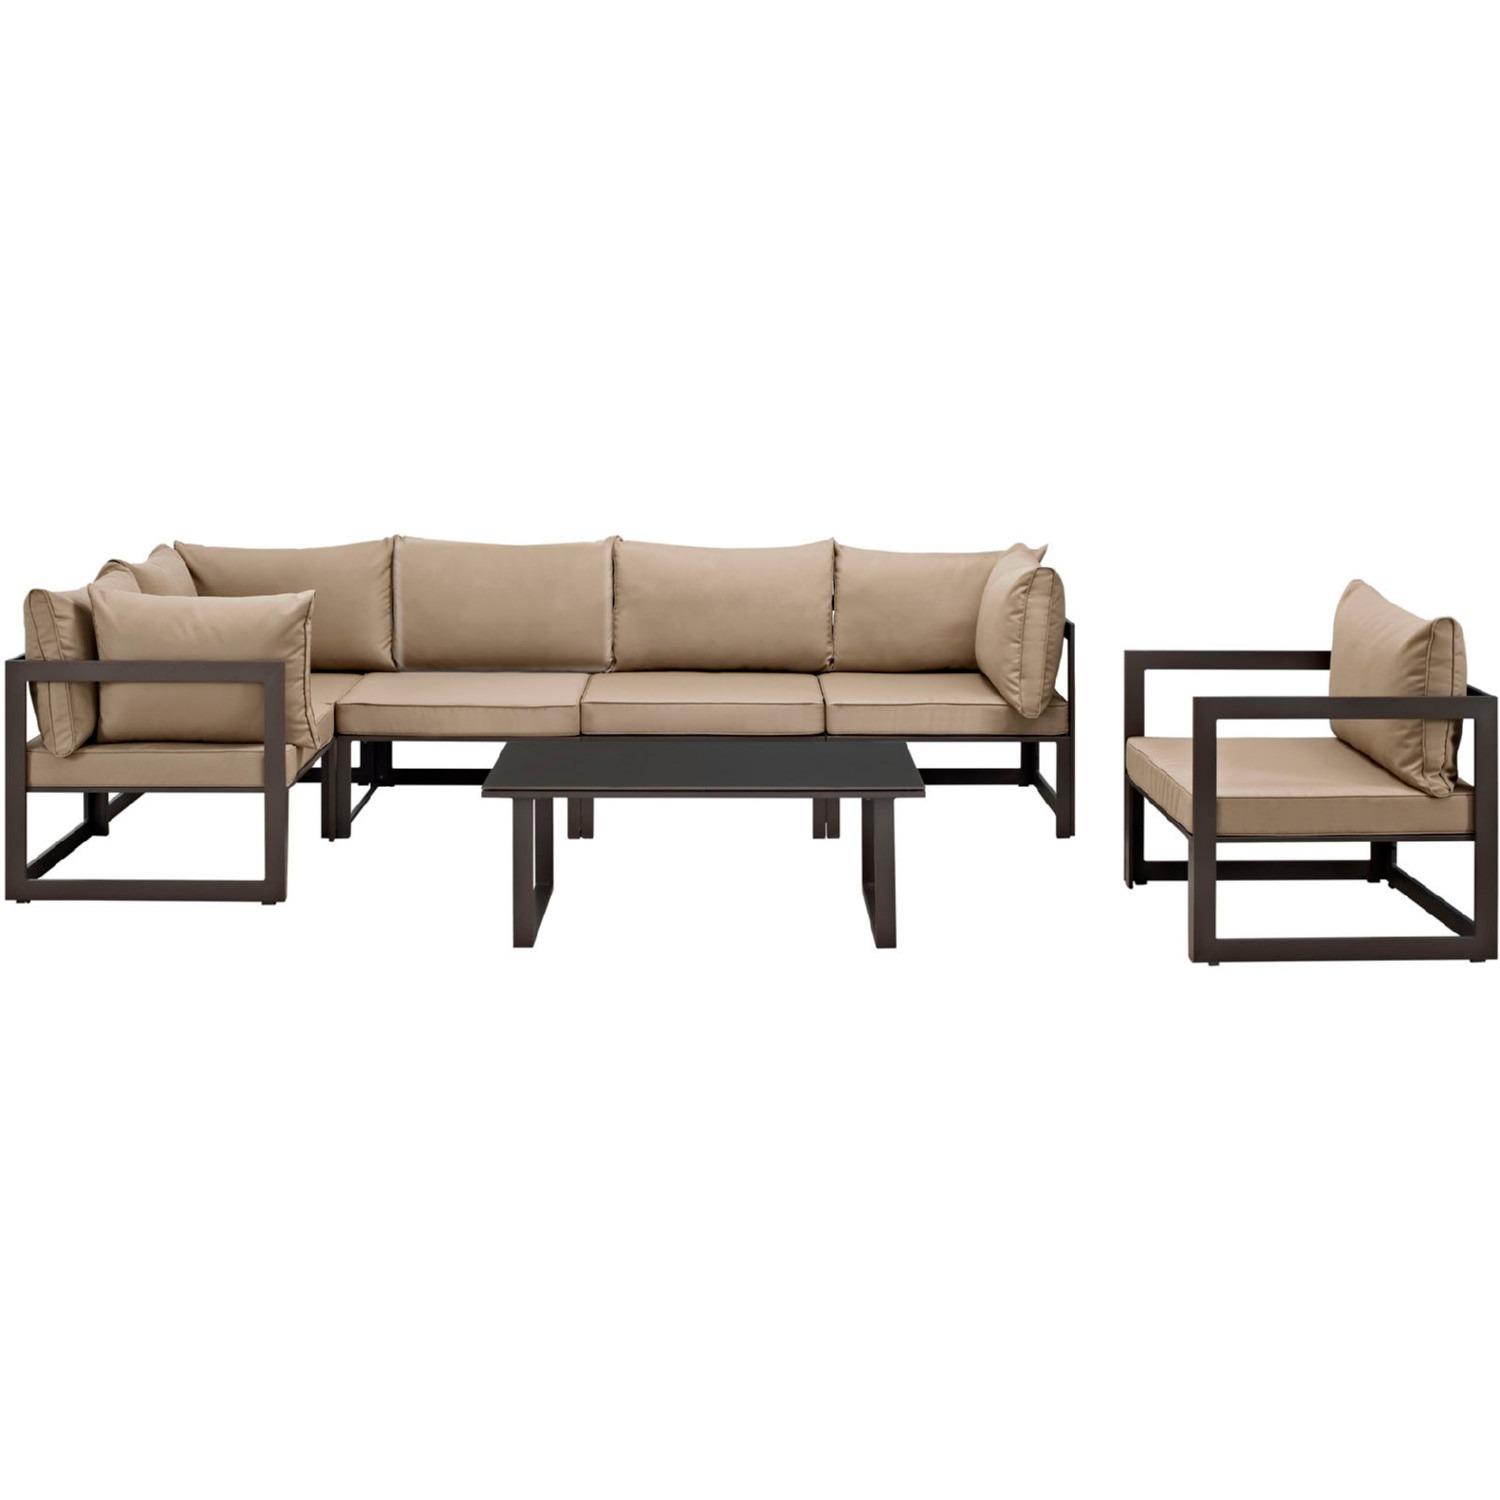 7-Piece Outdoor Sectional In Mocha & Brown Finish - image-0